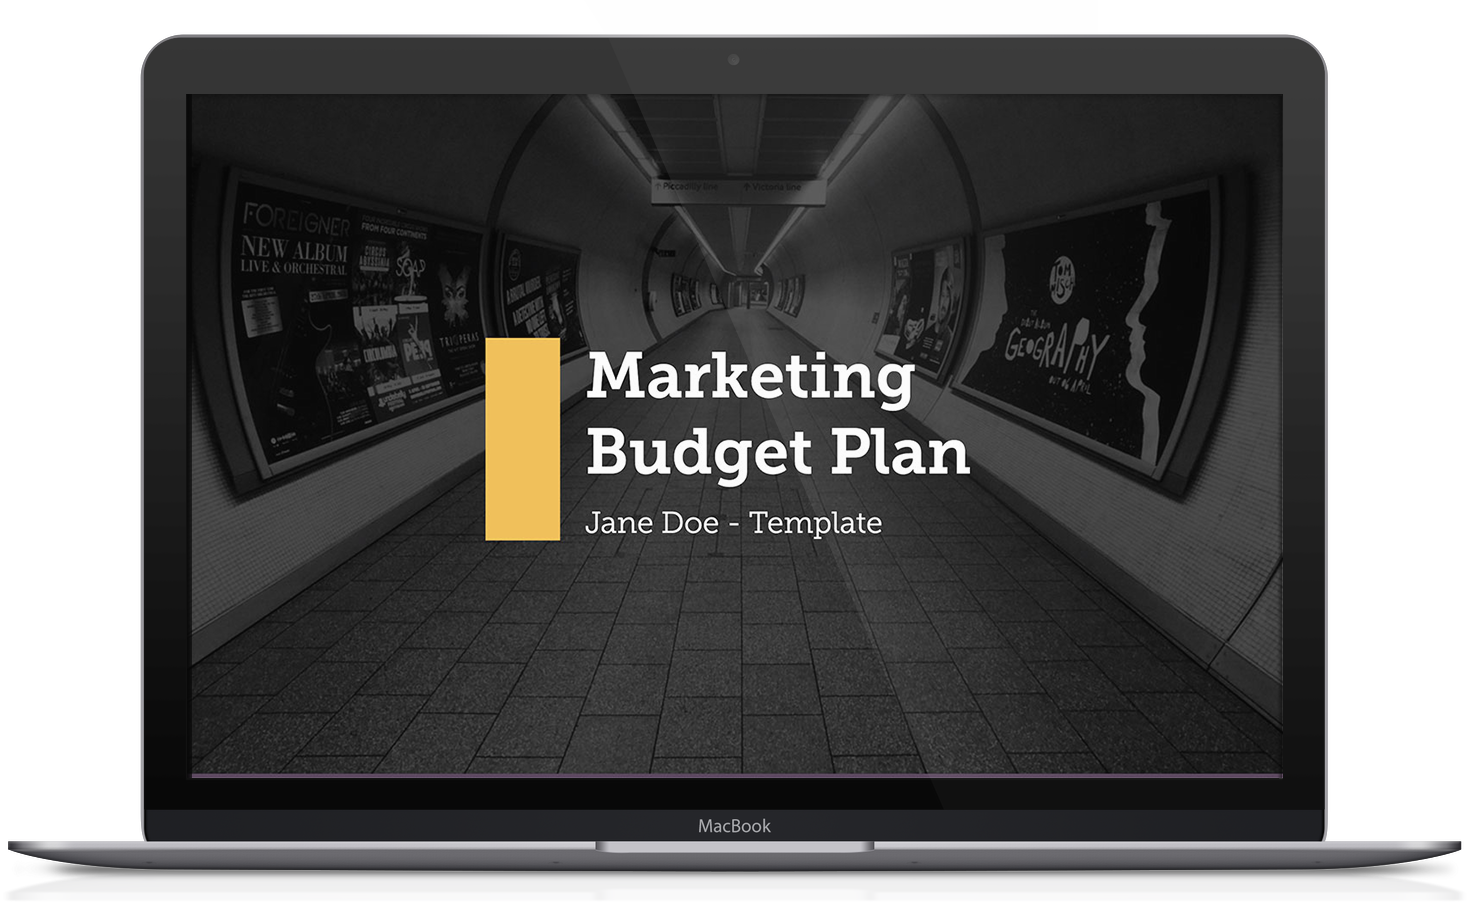 Marketing-budget-plan-template-1.png